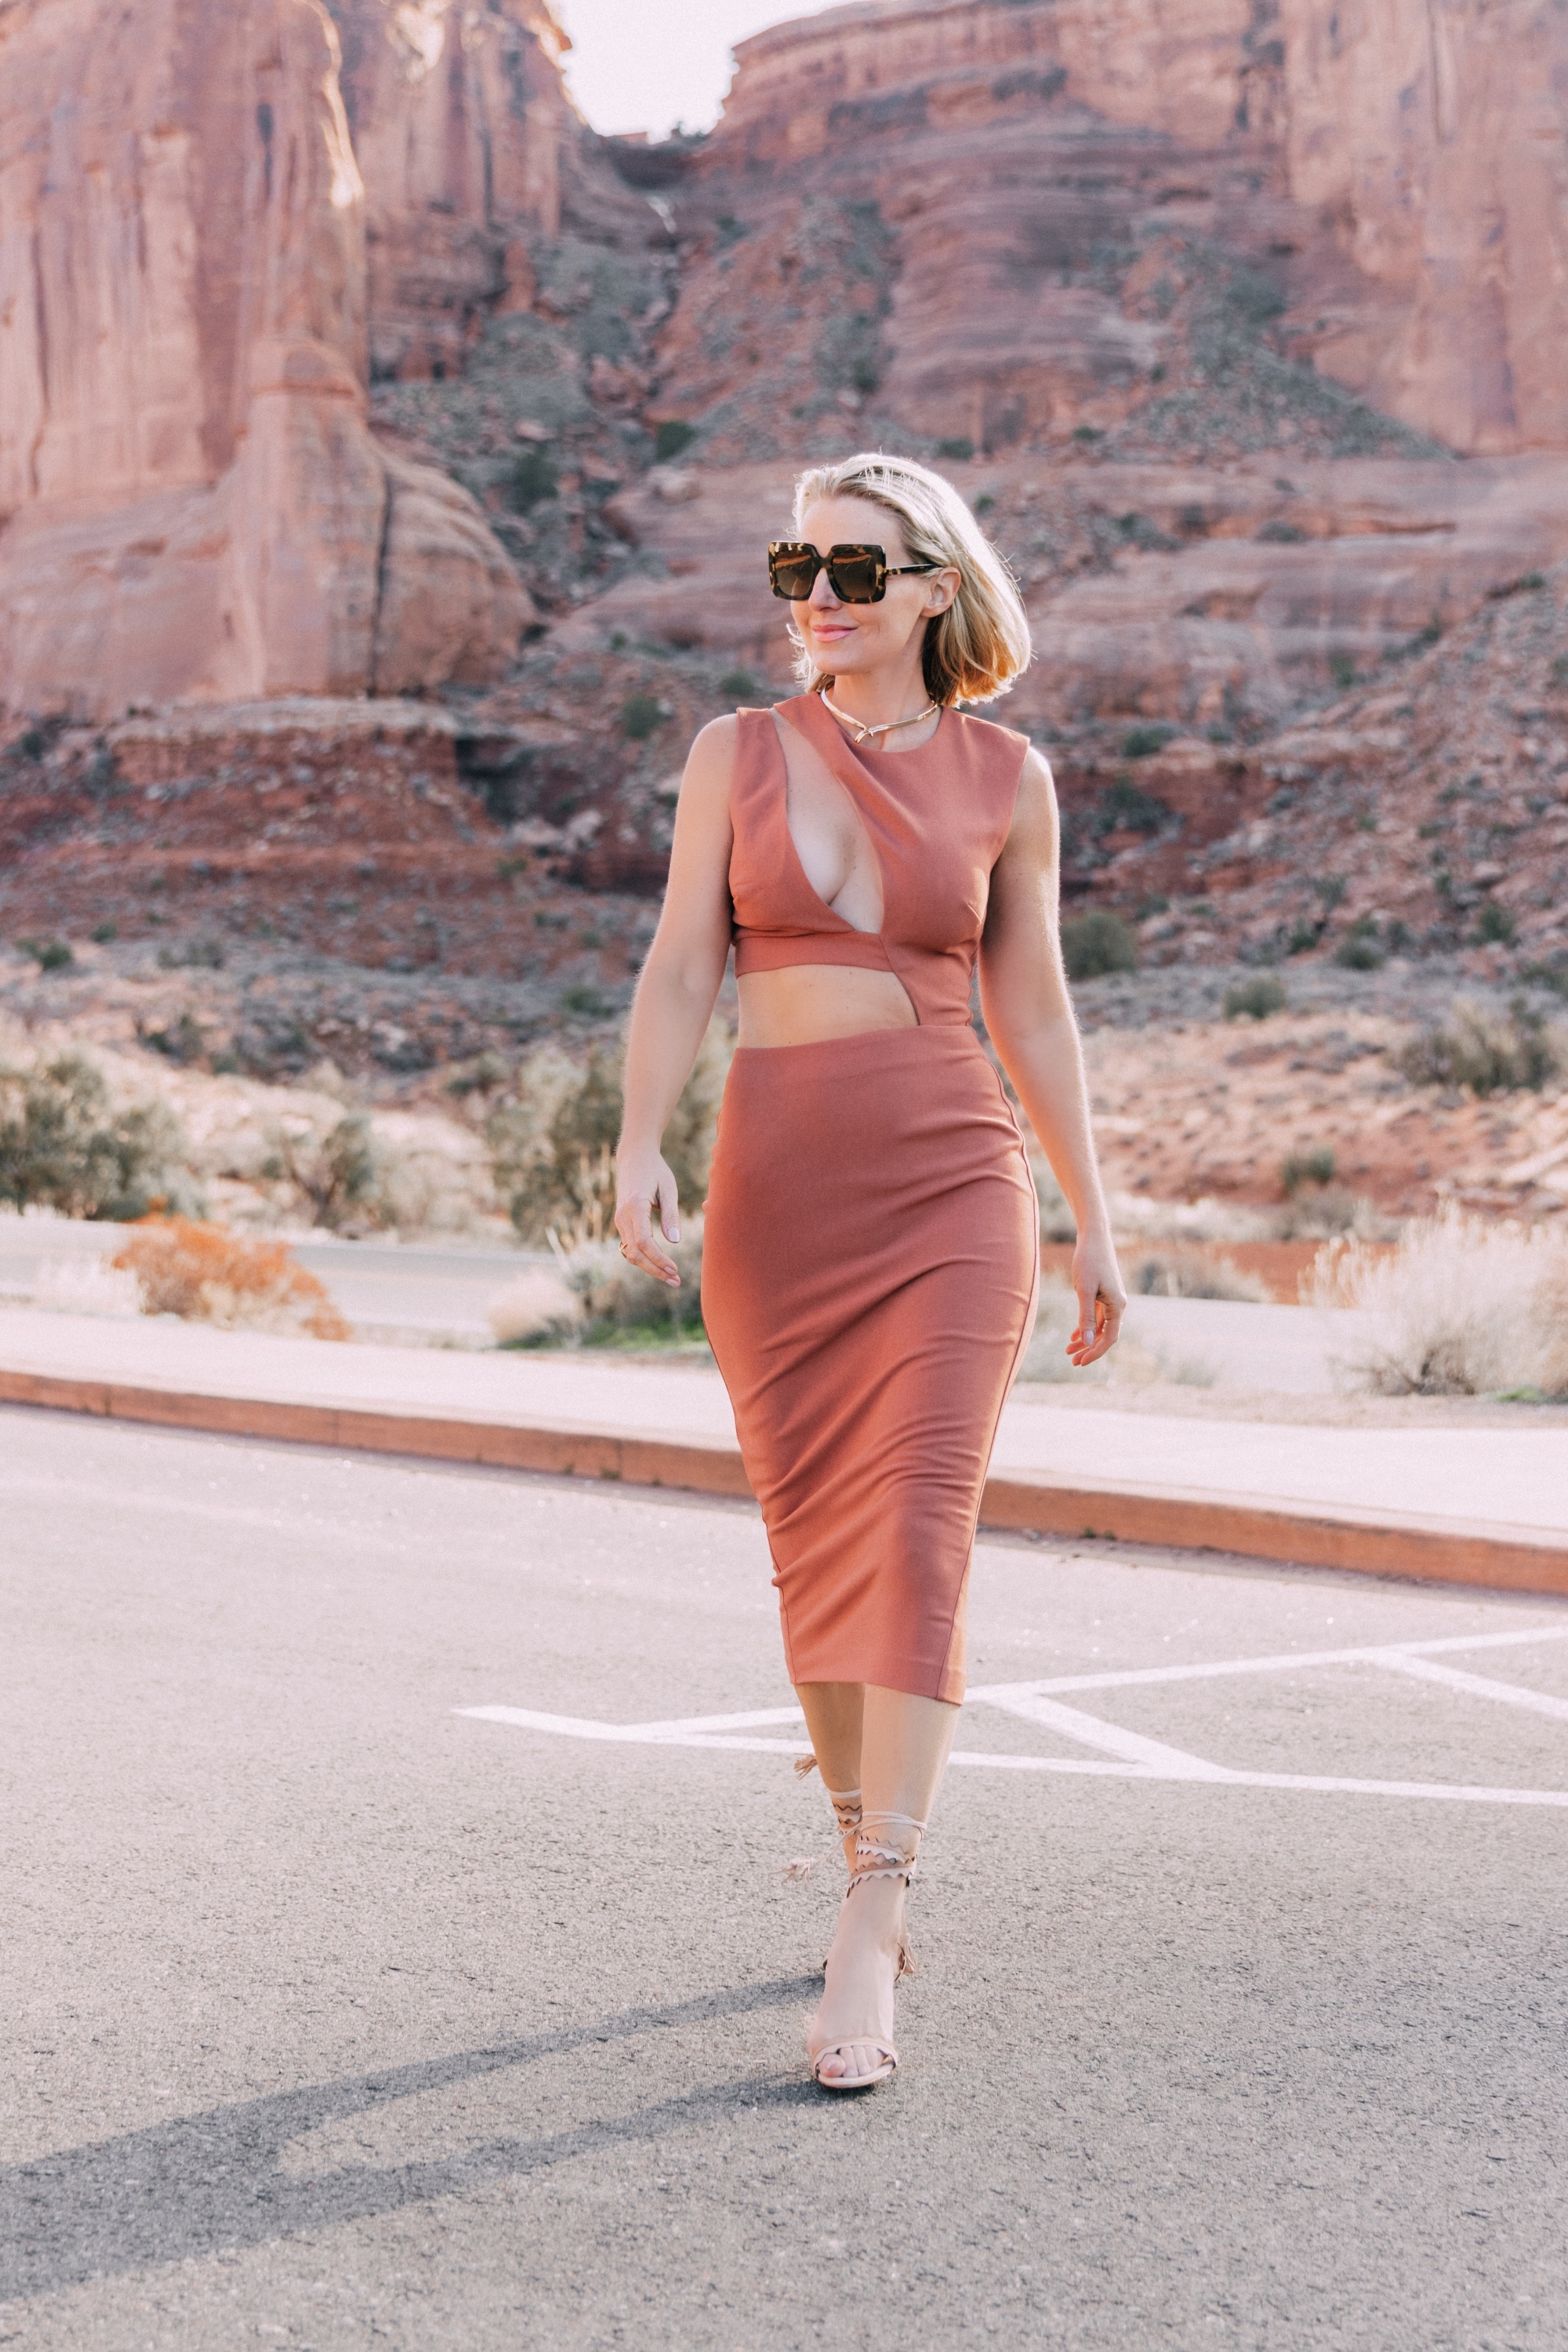 Trendy Rust Colored Midi Dress with Sexy Cutouts on fashion over 40 blogger Erin Busbee in Moab, Utah #3